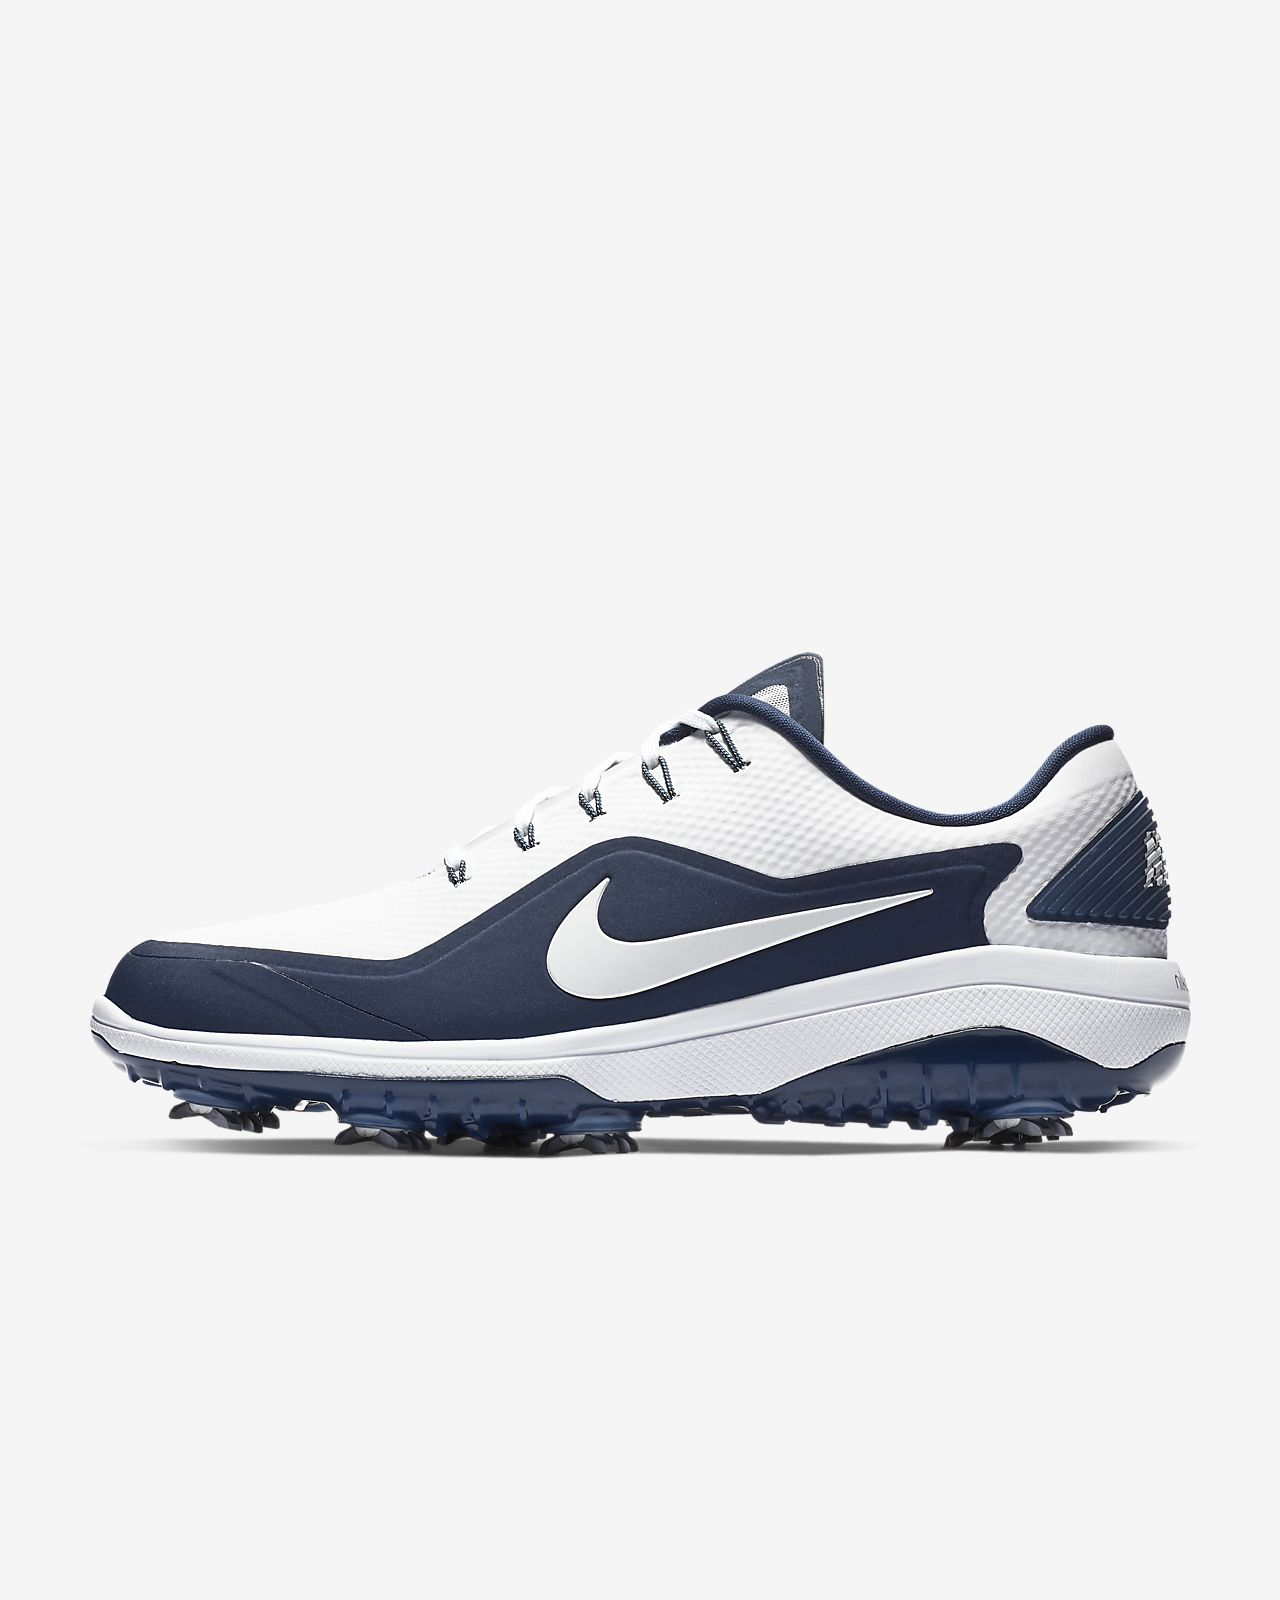 fec8e96a1d0 Nike React Vapor 2 Men s Golf Shoe. Nike.com